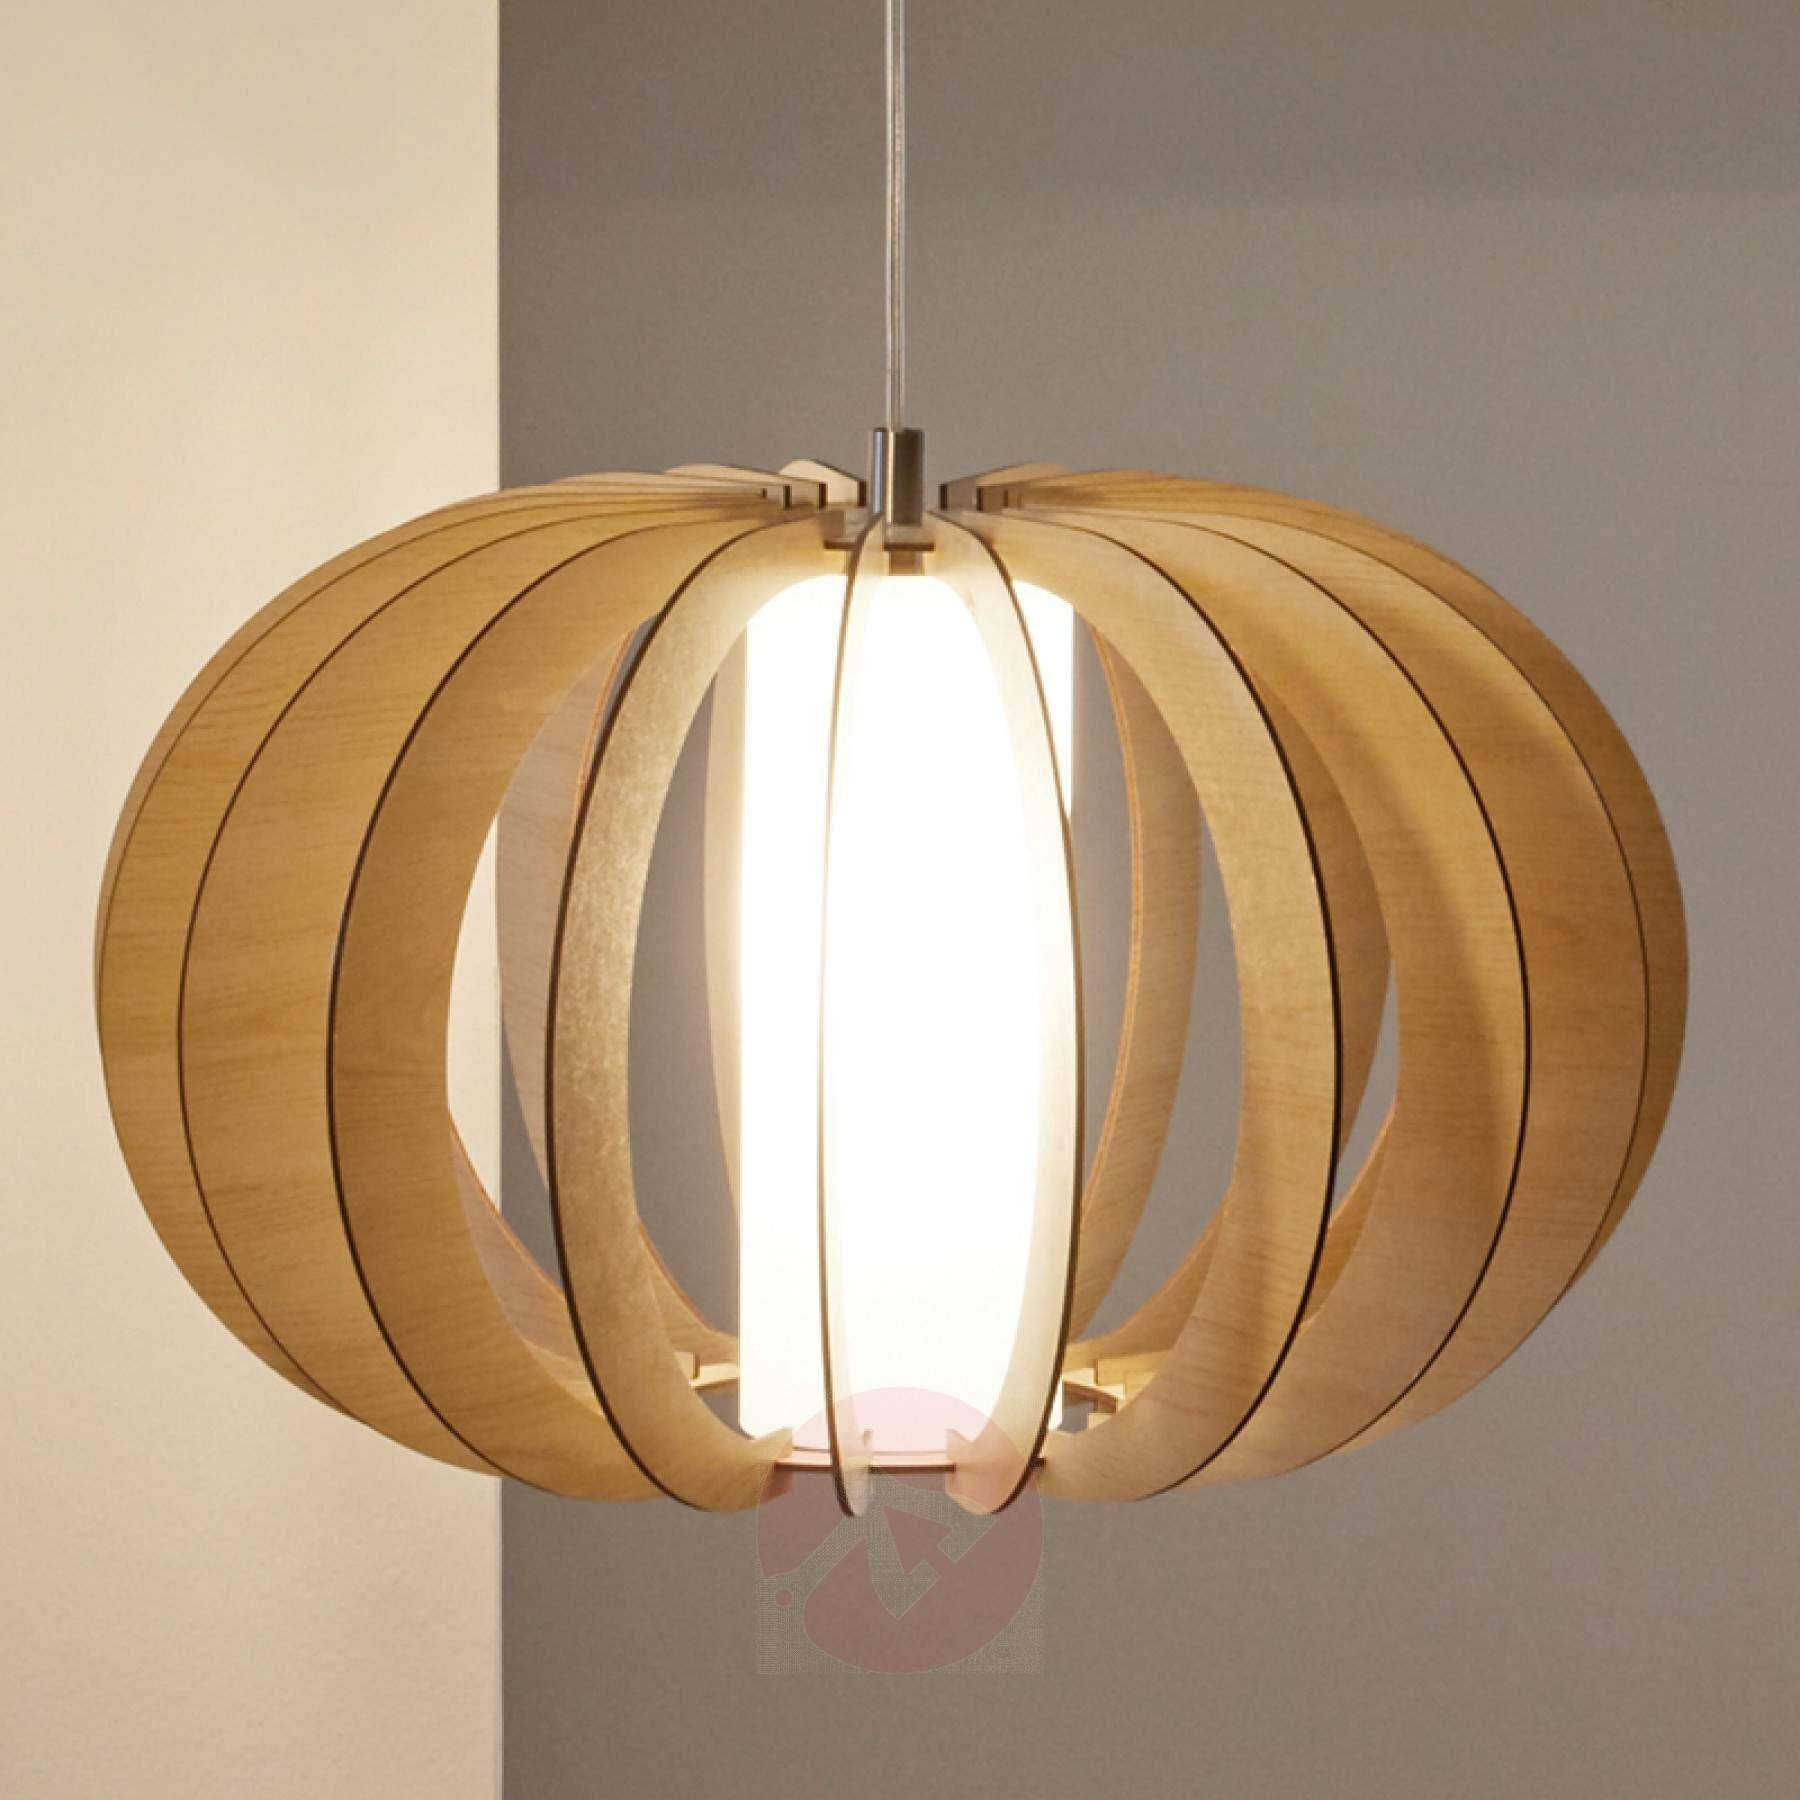 Stellato Round Slatted Wood Pendant Light New Arrivals